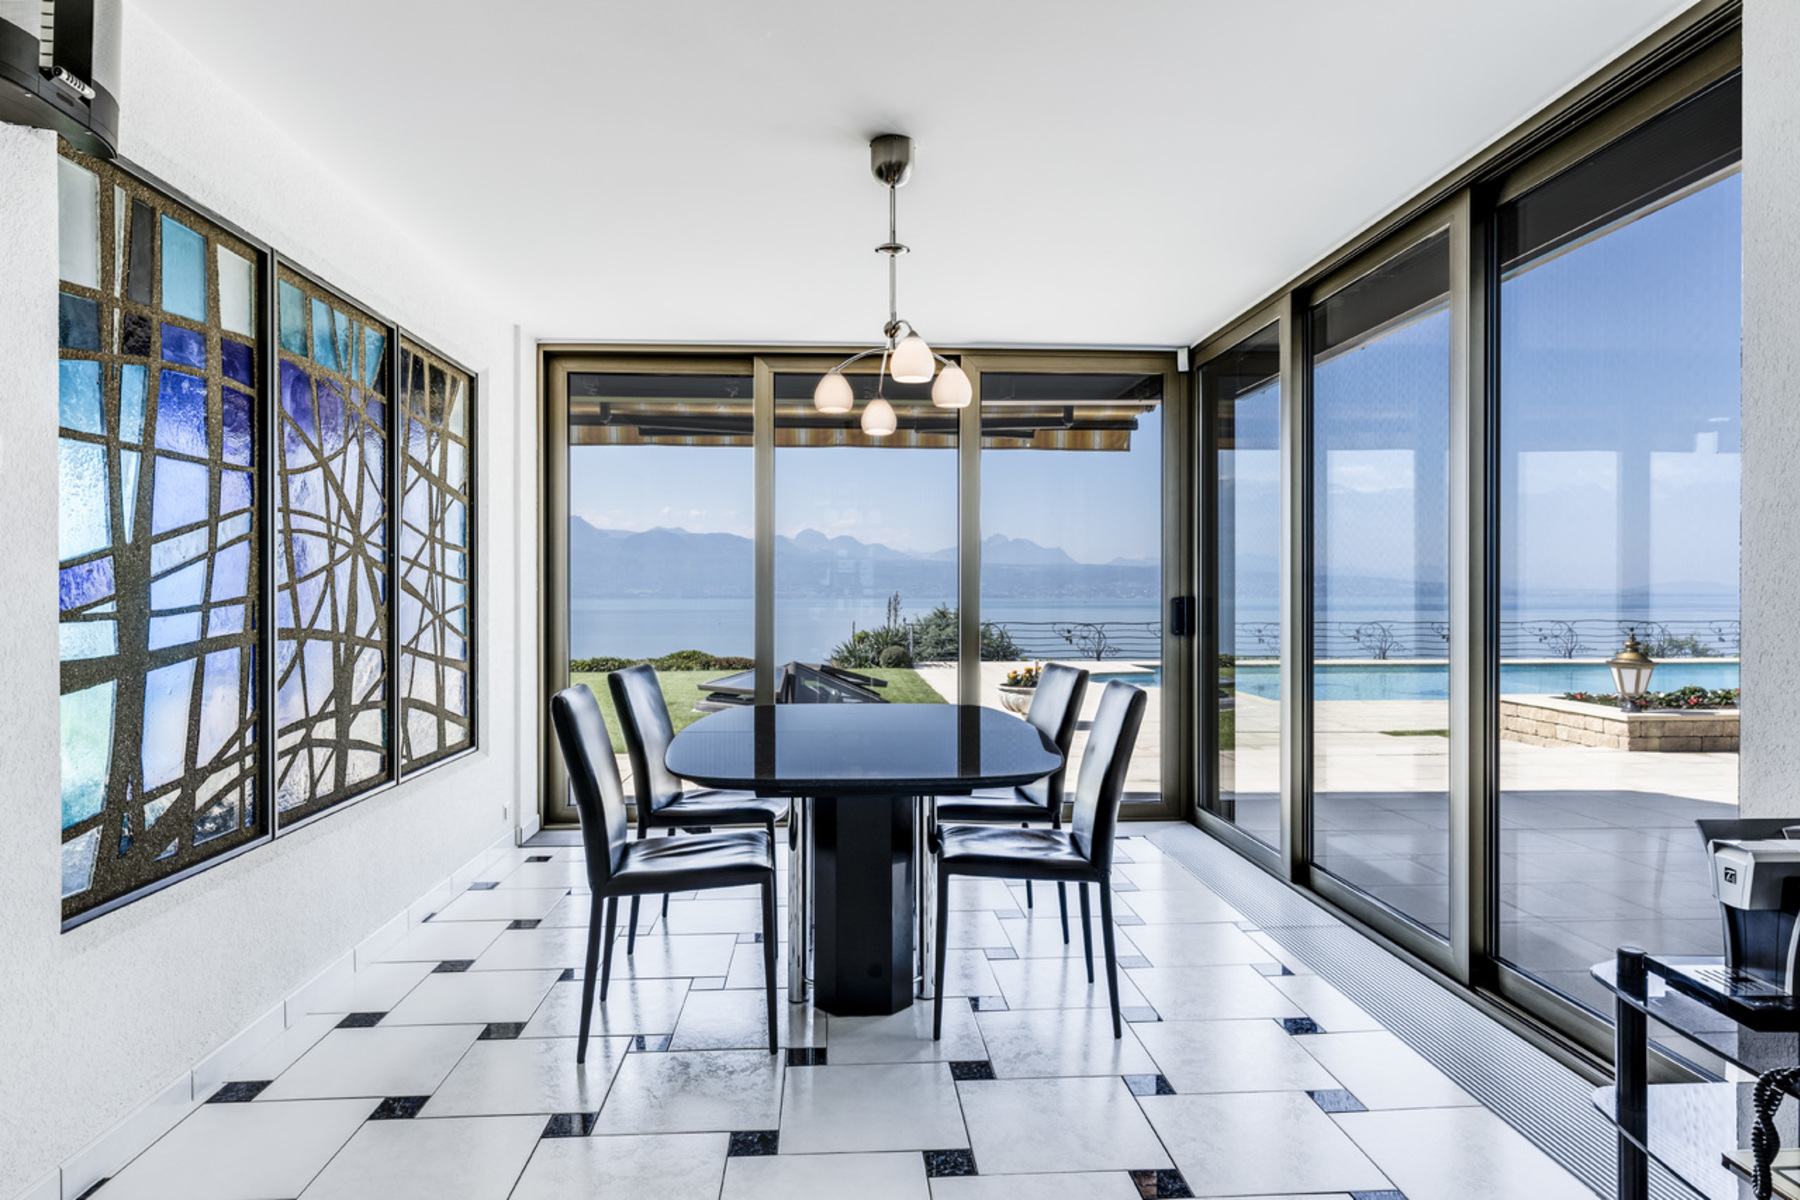 Single Family Home for Sale at Modern villa with character in an exceptional location Paudex, Paudex, Vaud, 1094 Switzerland